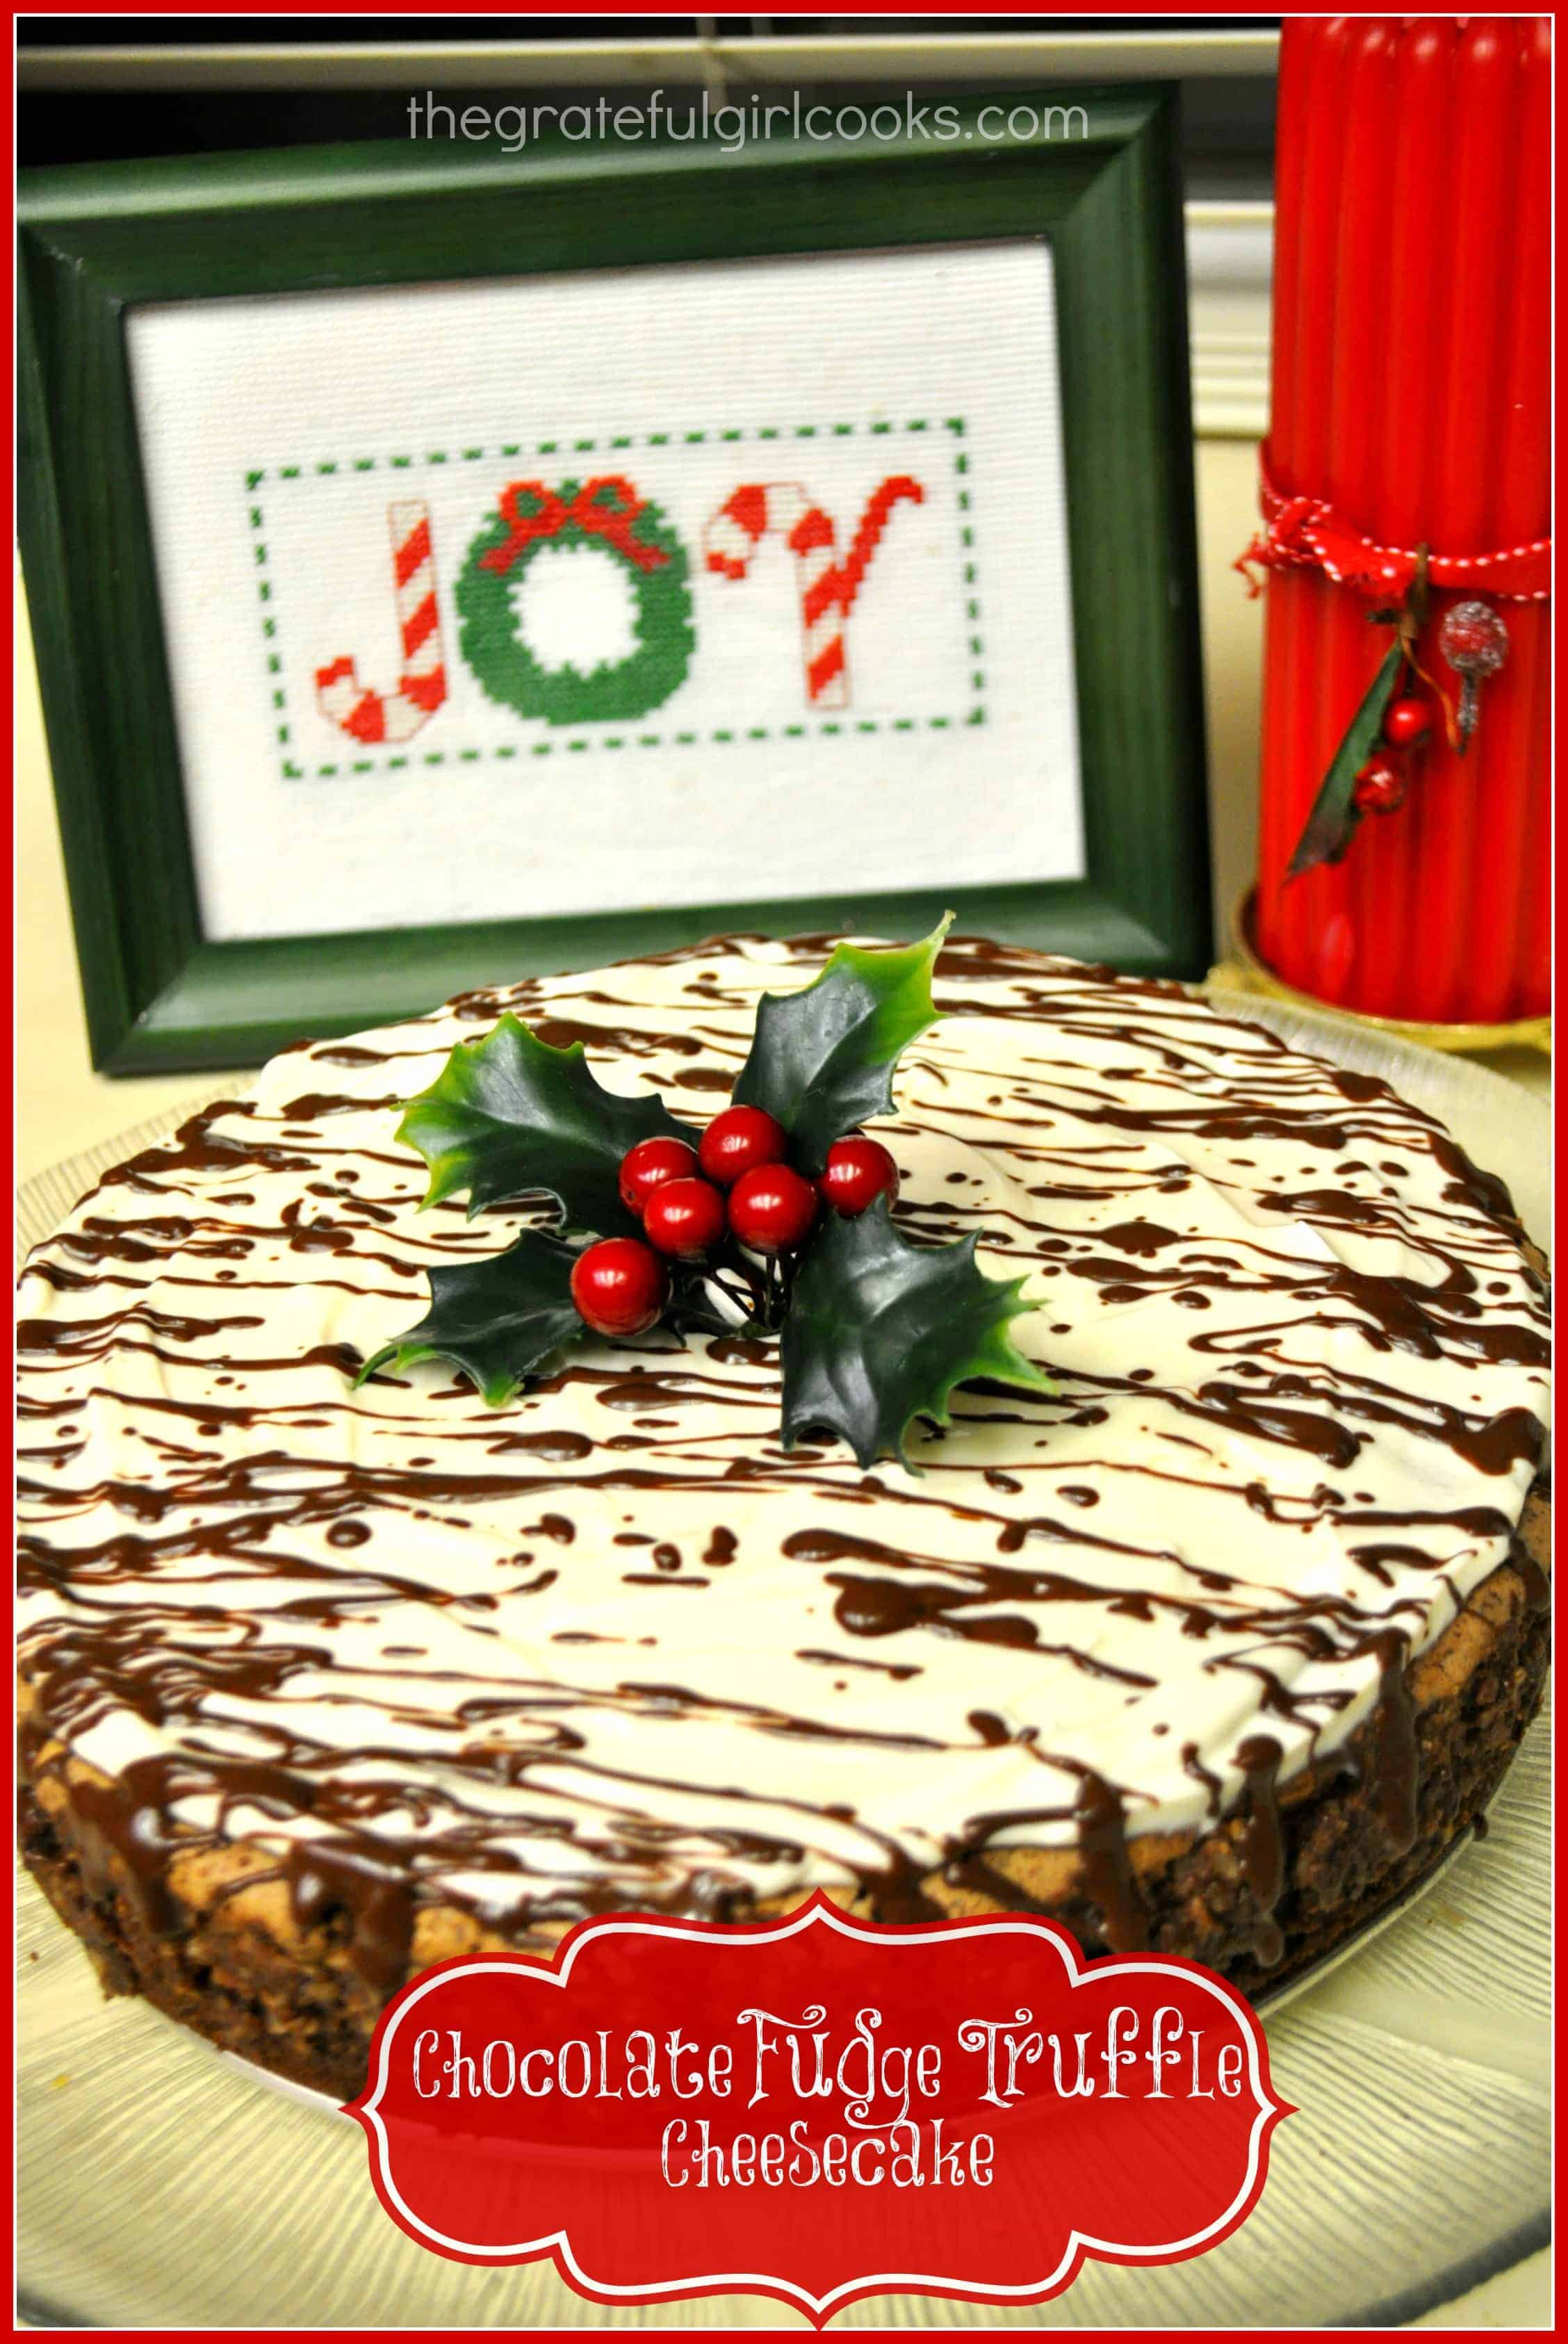 Entertaining for the holidays? You will LOVE this creamy Chocolate Fudge Truffle Cheesecake with chocolate graham cracker crust and chocolate drizzle garnish!